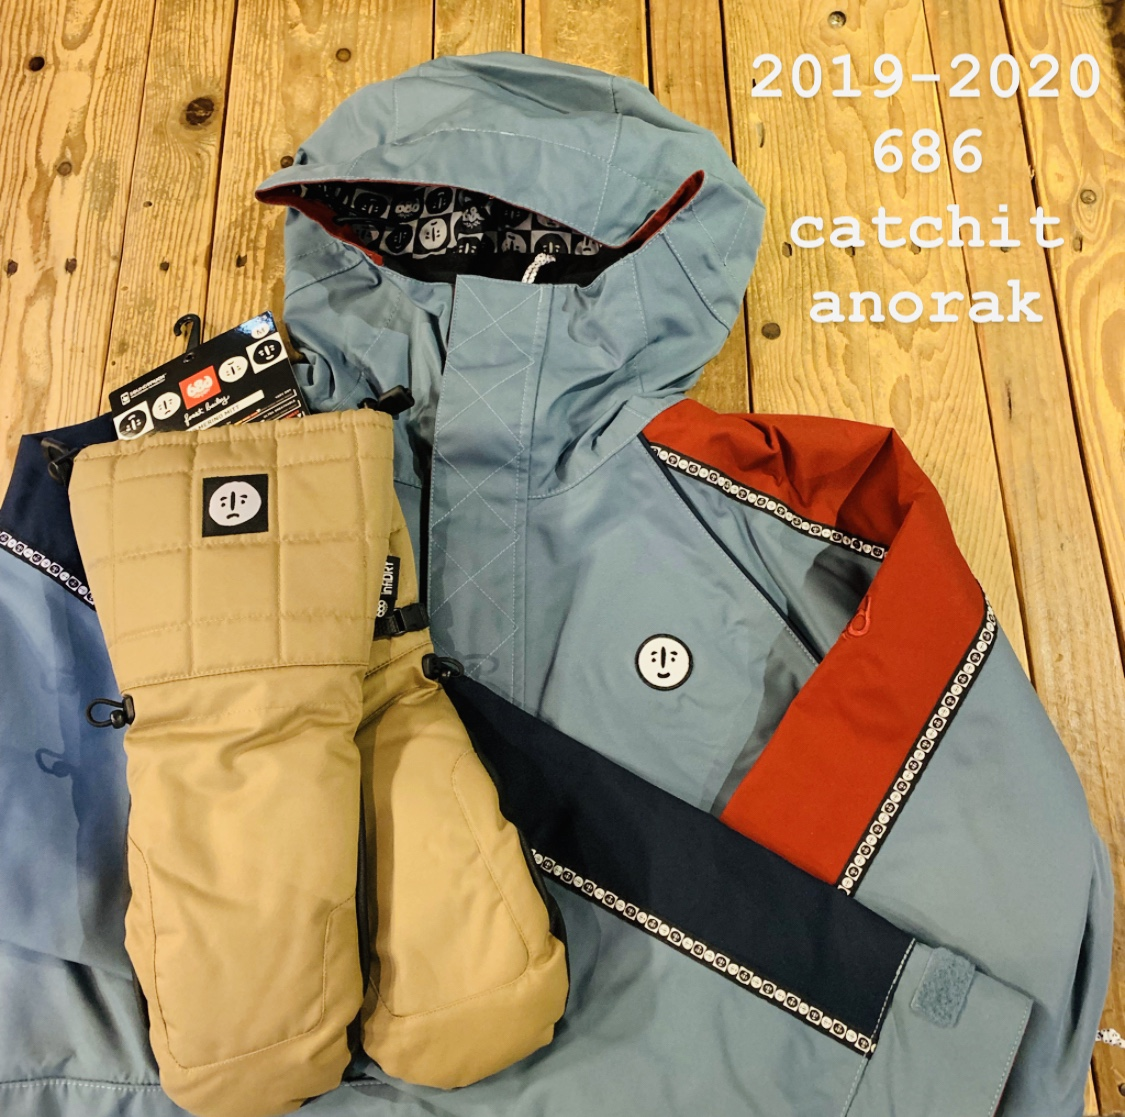 686_商品04_32_CATCHIT JACKET&PANT_01